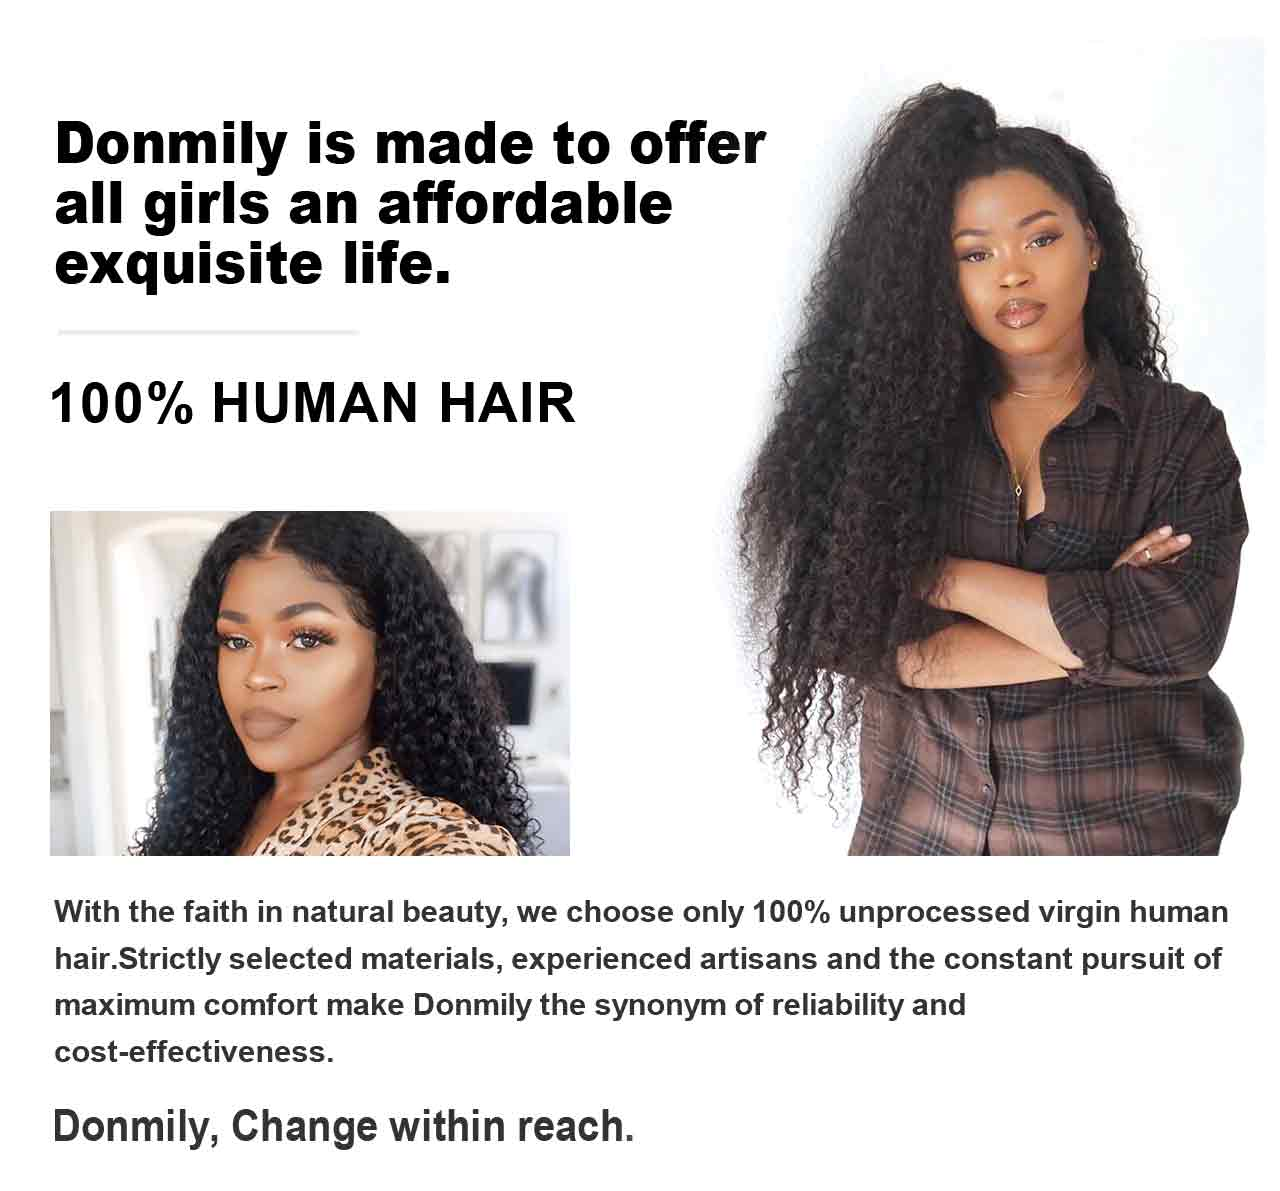 donmily 100% virgin human hair